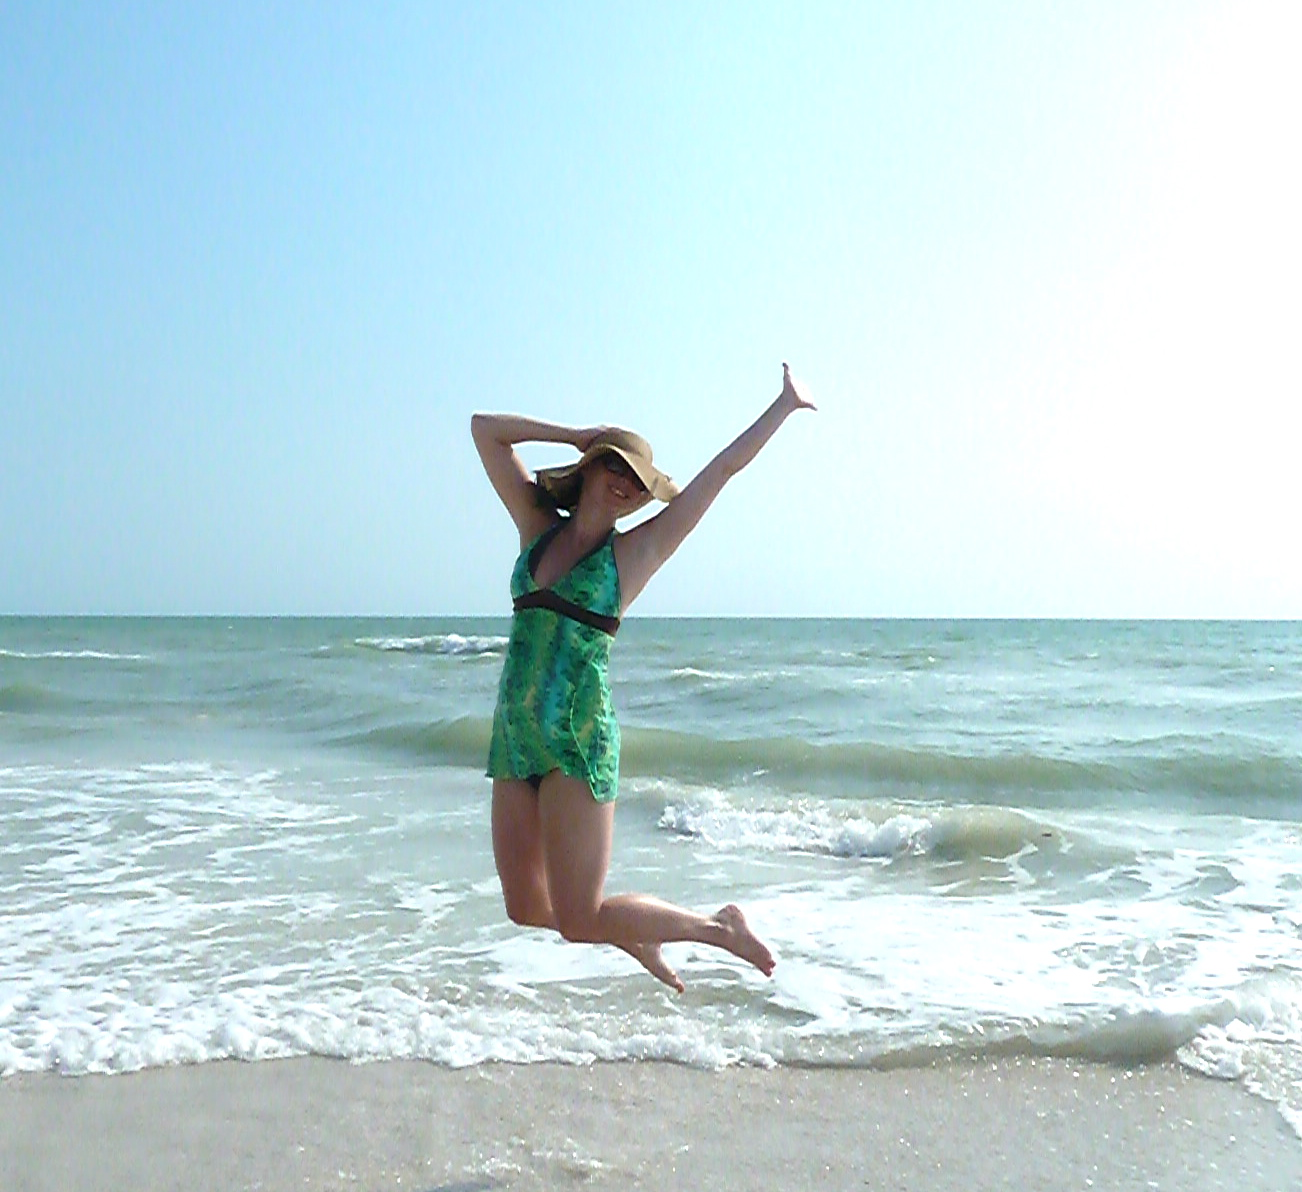 ... Beach Freedom is a perfect bikini buddy. Want to depart from the basics?